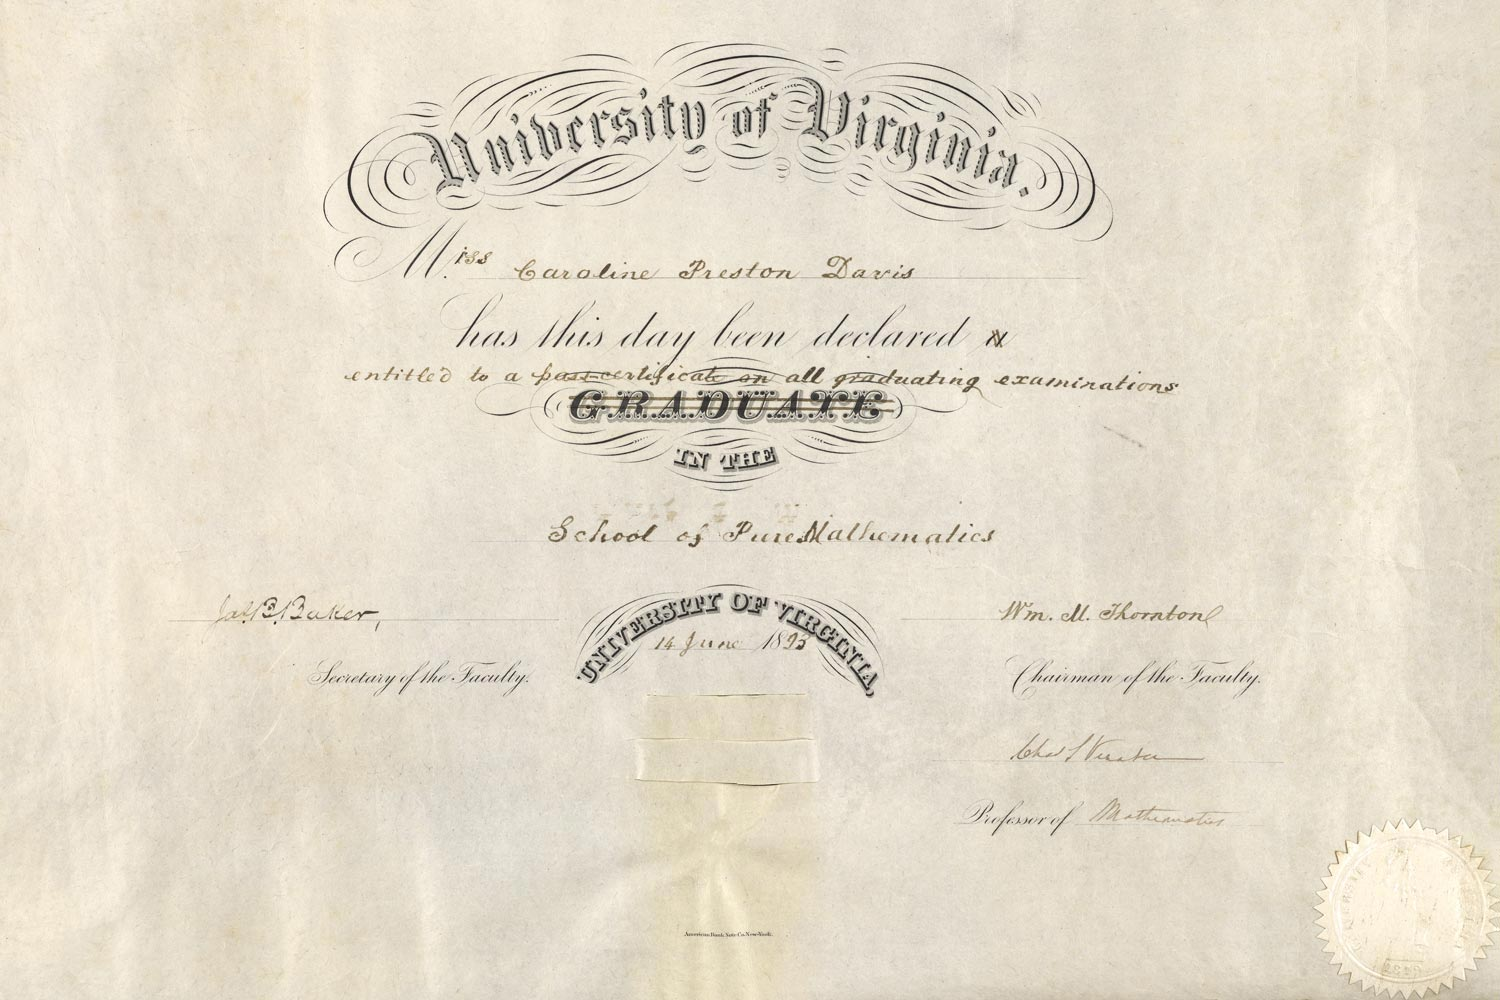 A diploma with handwritten edits